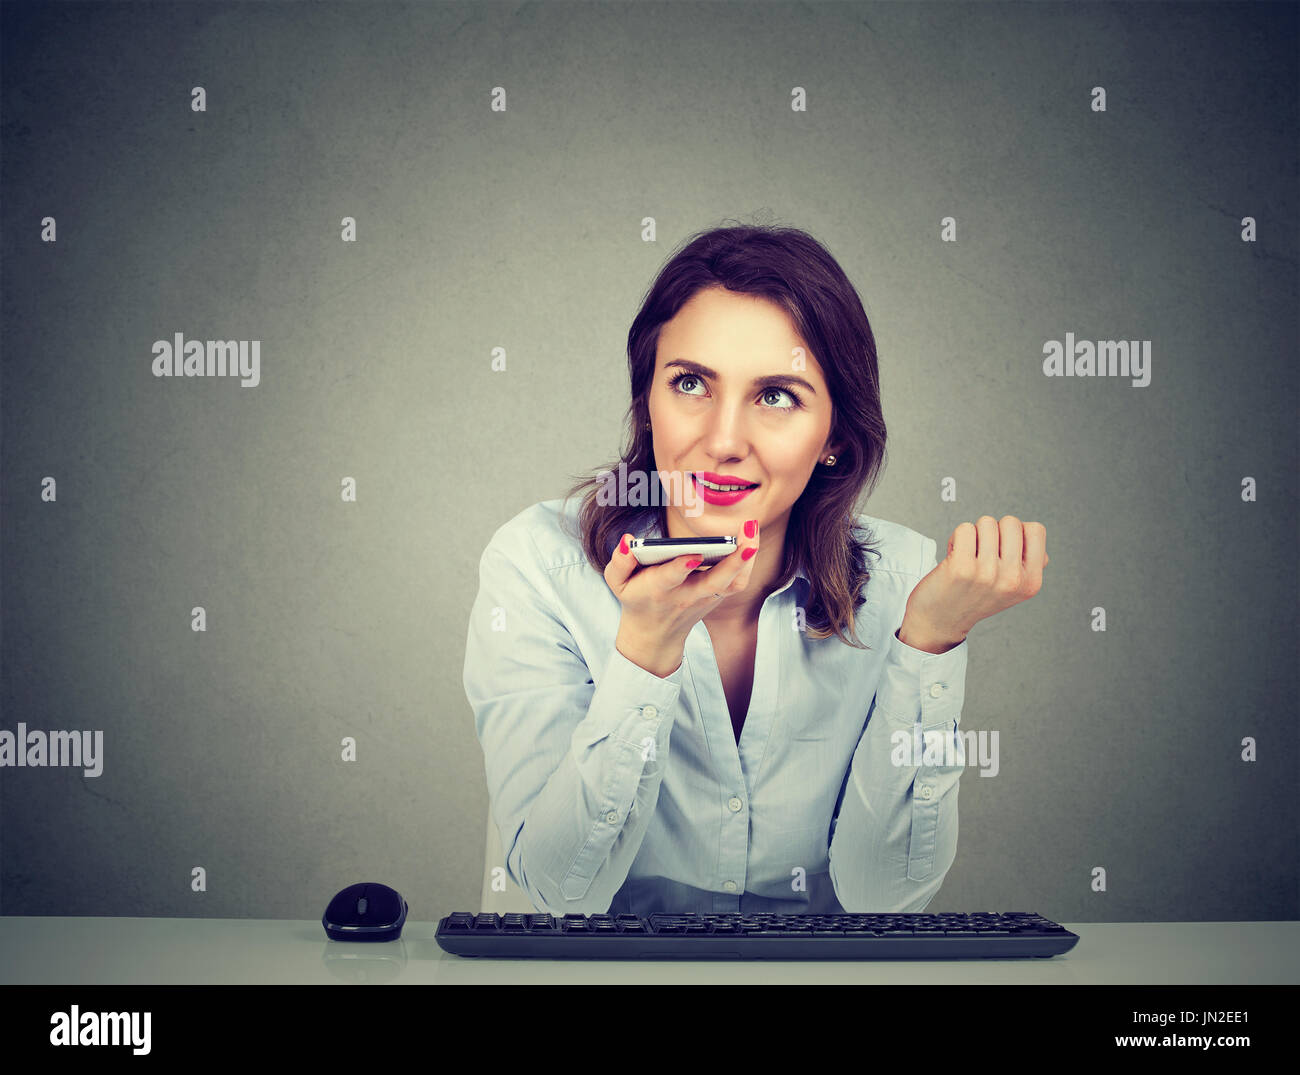 Woman using a smart phone voice recognition function on line sitting at table isolated on gray wall background - Stock Image